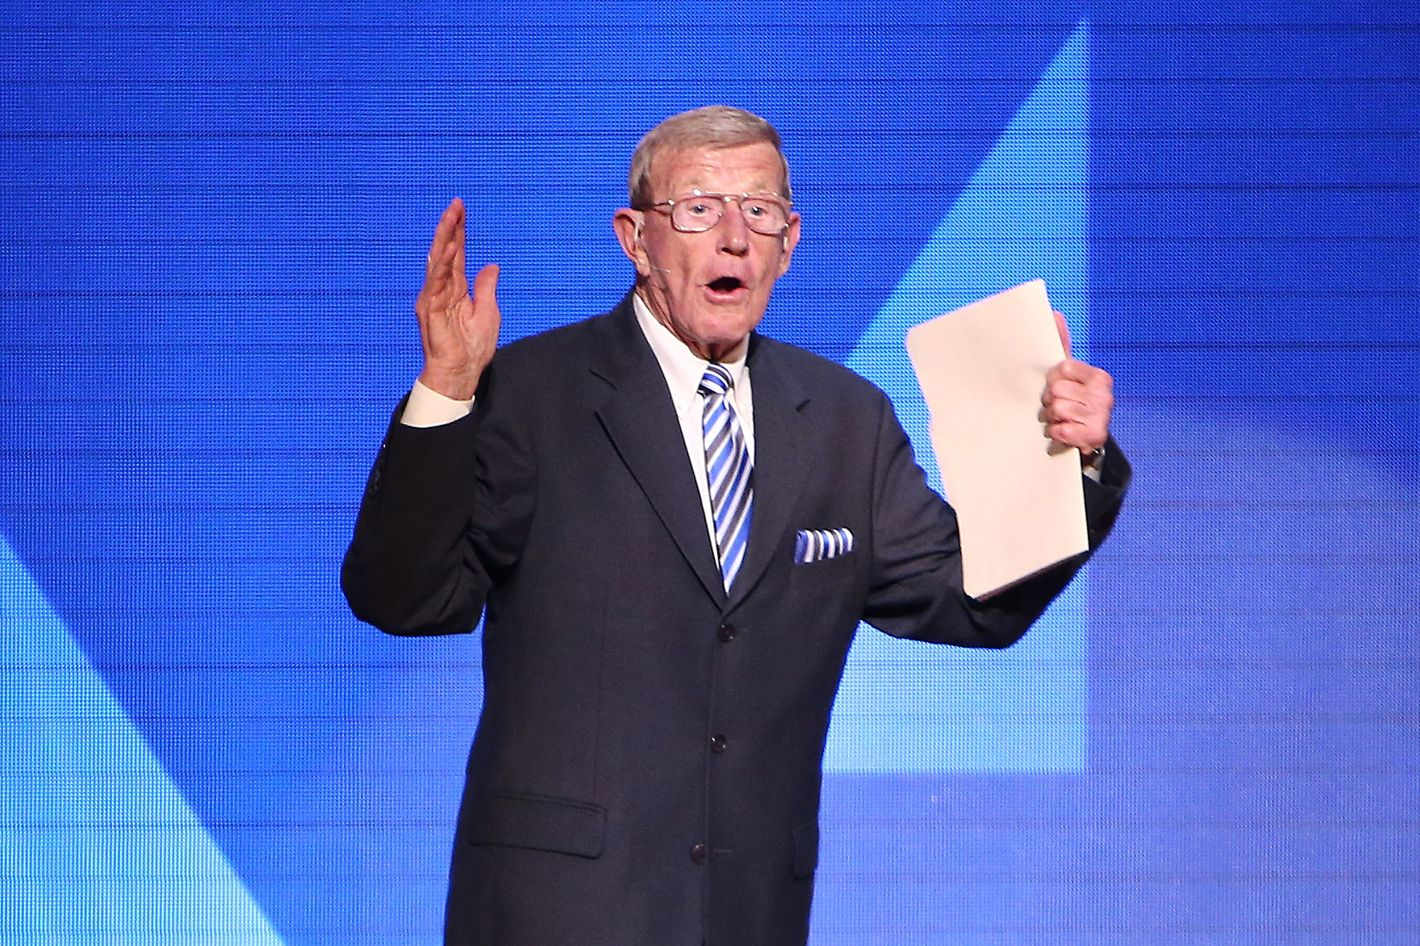 Republican Speaker Lou Holtz to Immigrants: 'I Don't Want to Become You'